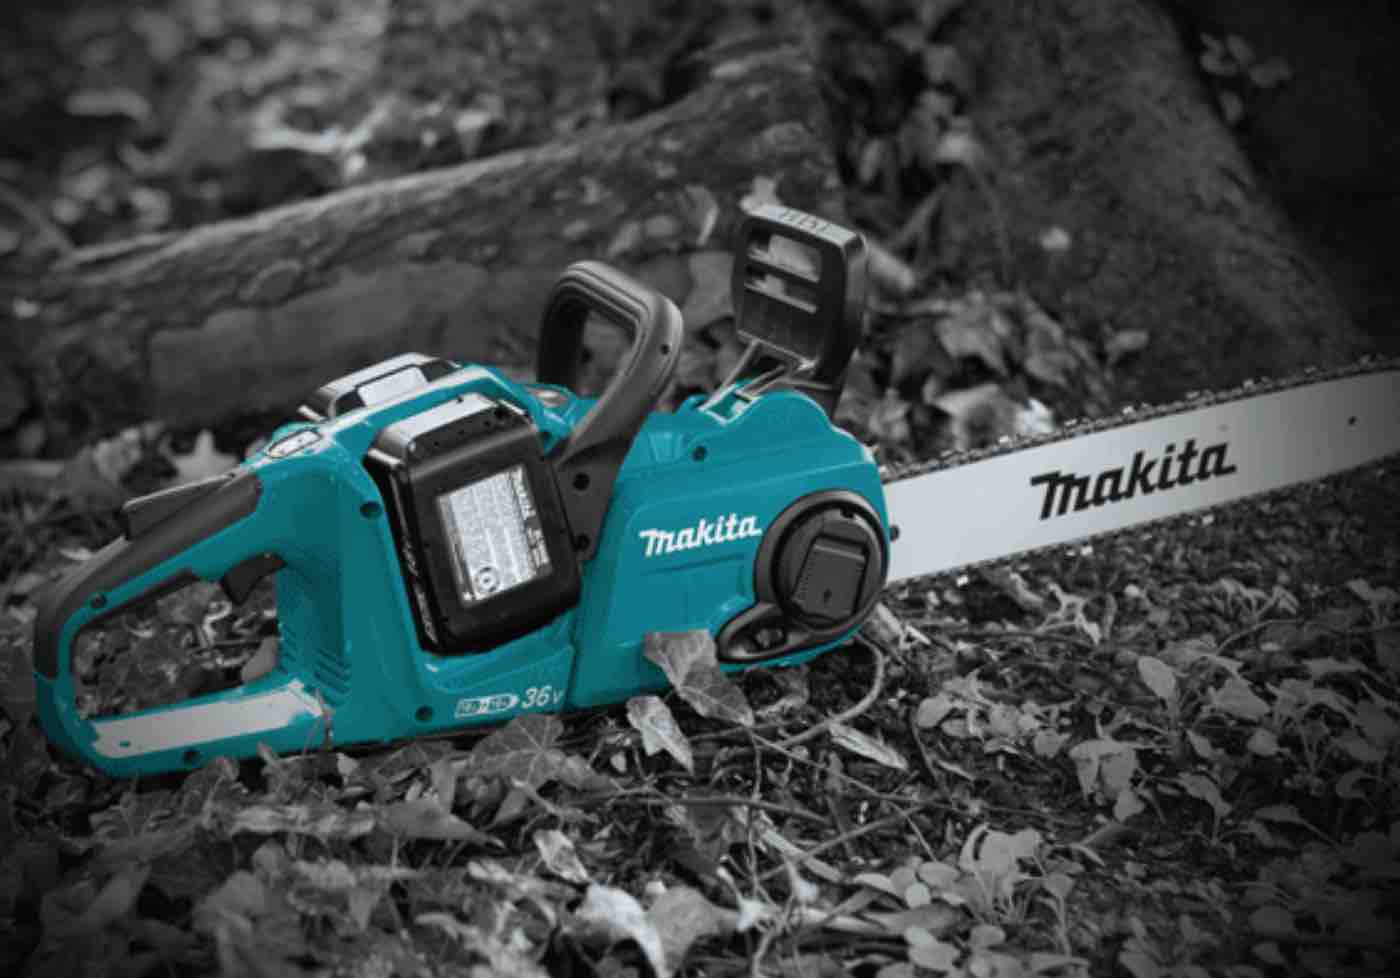 makita-outdoors.jpg